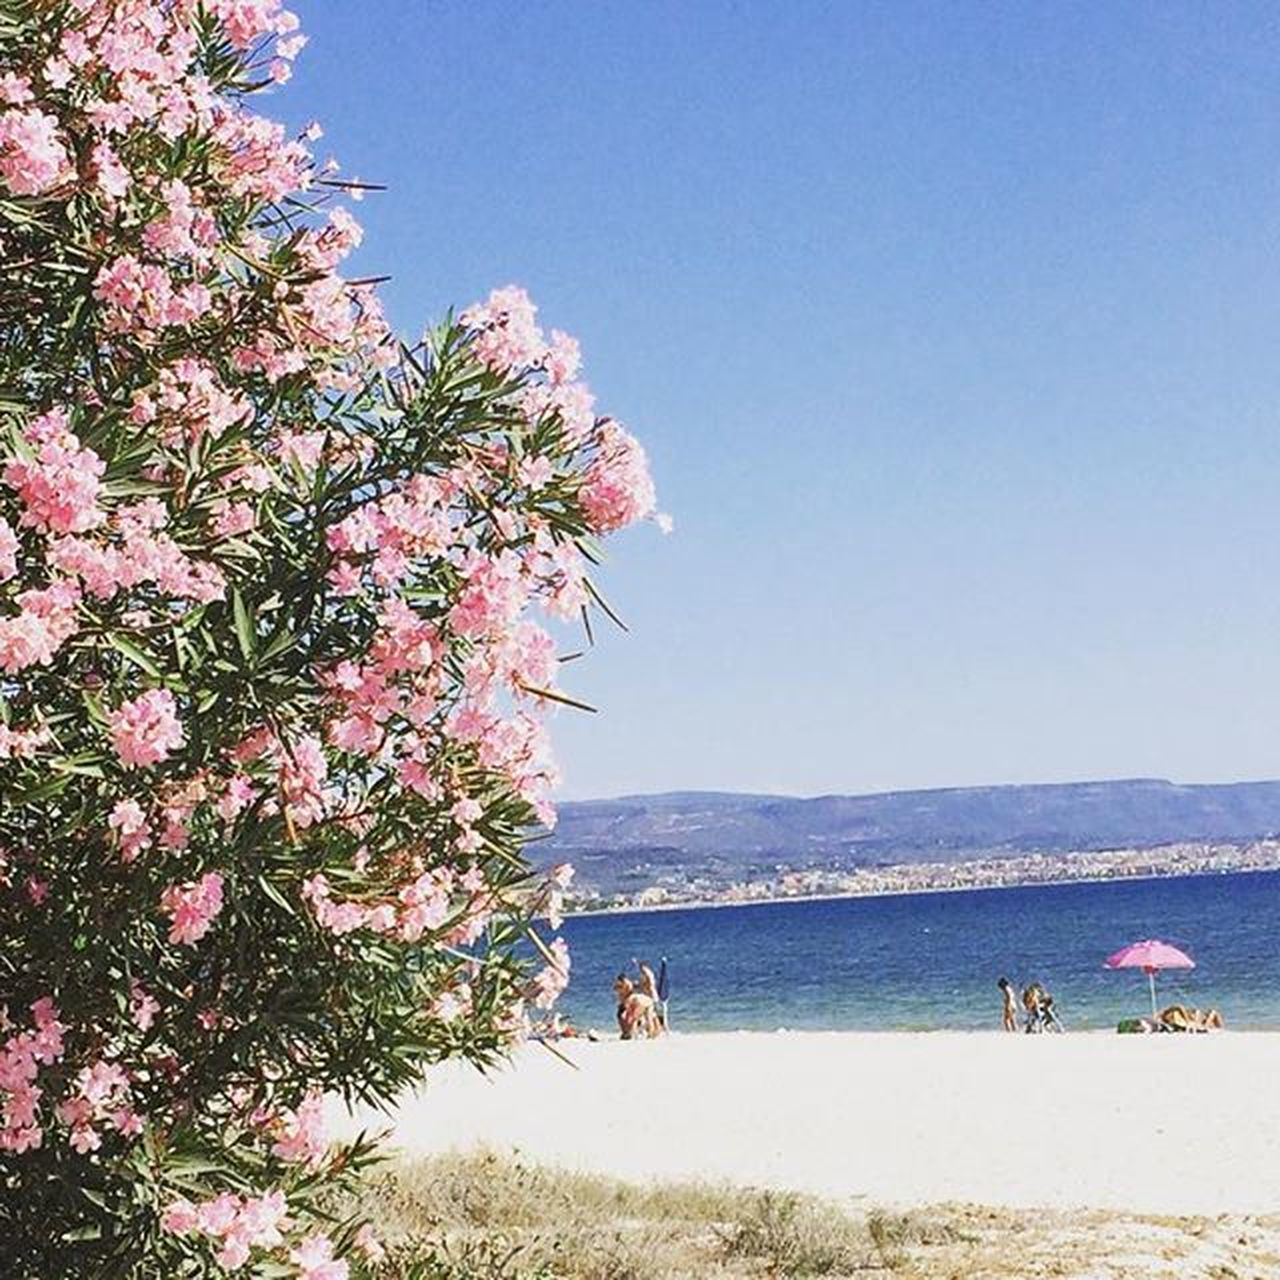 nature, tree, beauty in nature, day, scenics, water, sea, clear sky, outdoors, mountain, beach, flower, men, sky, pets, mammal, people